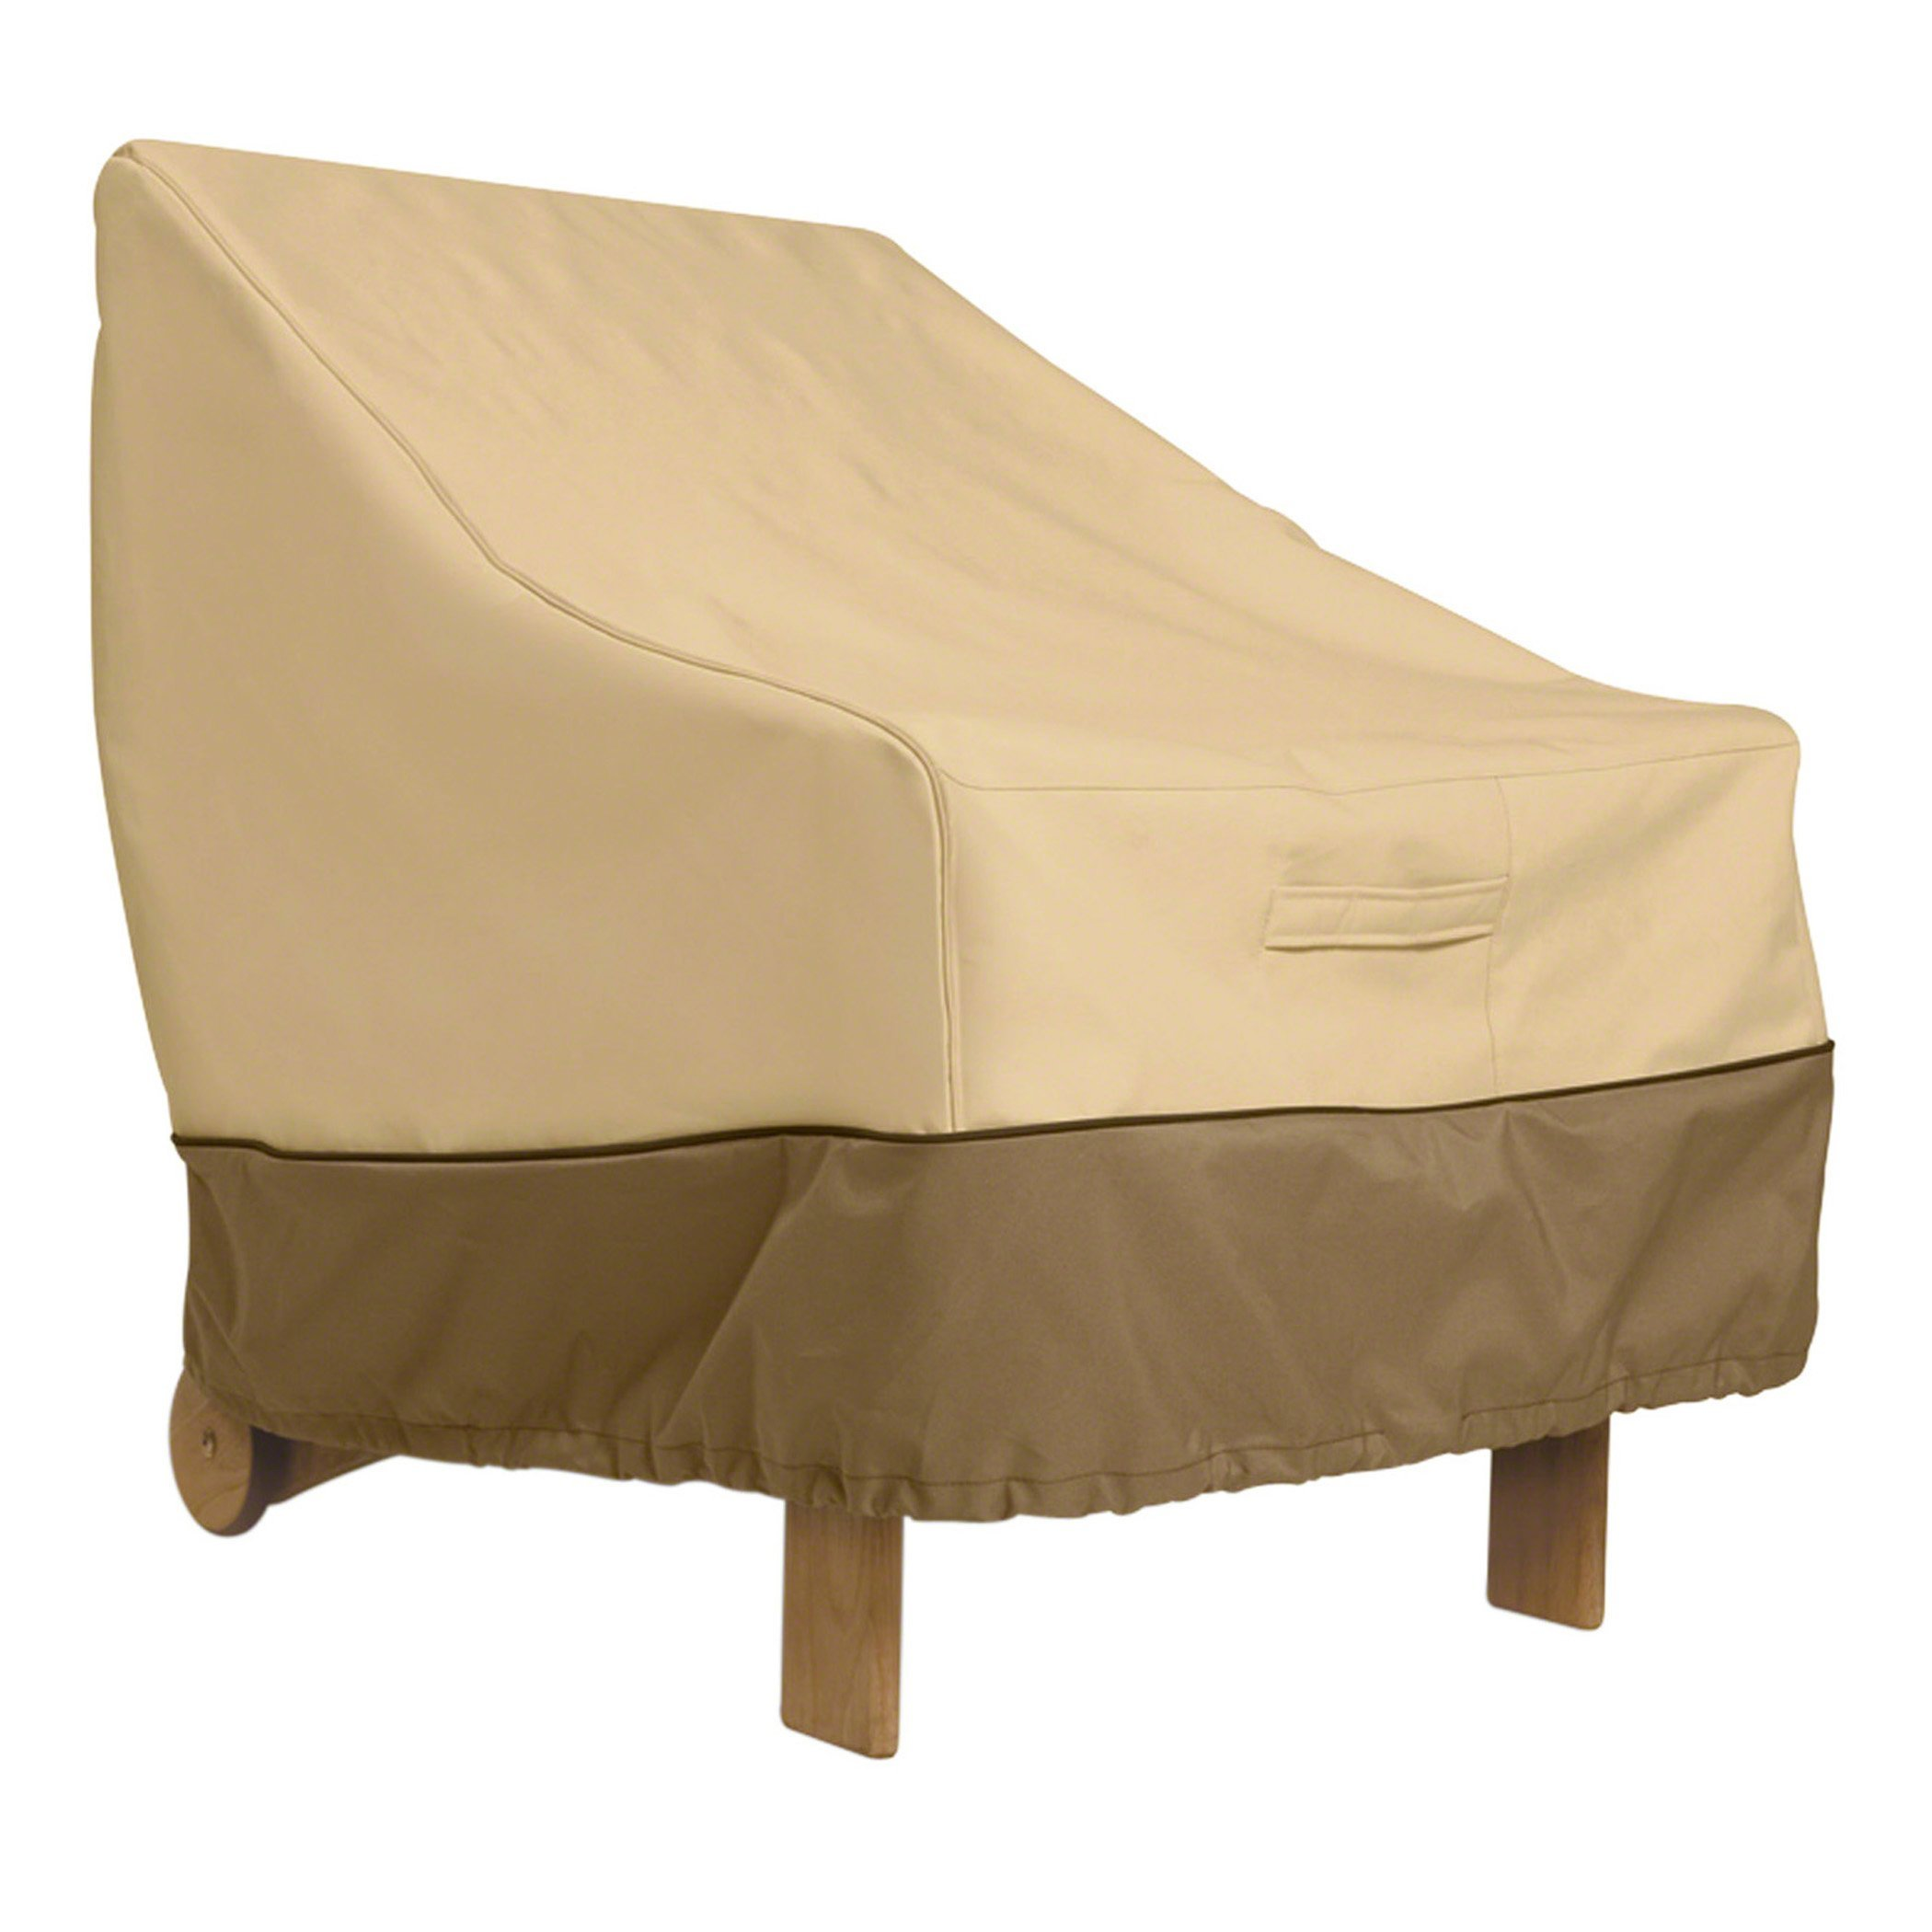 Details about Classic Accessories Veranda Patio Lounge/Club Chair Cover -  Durable and Water